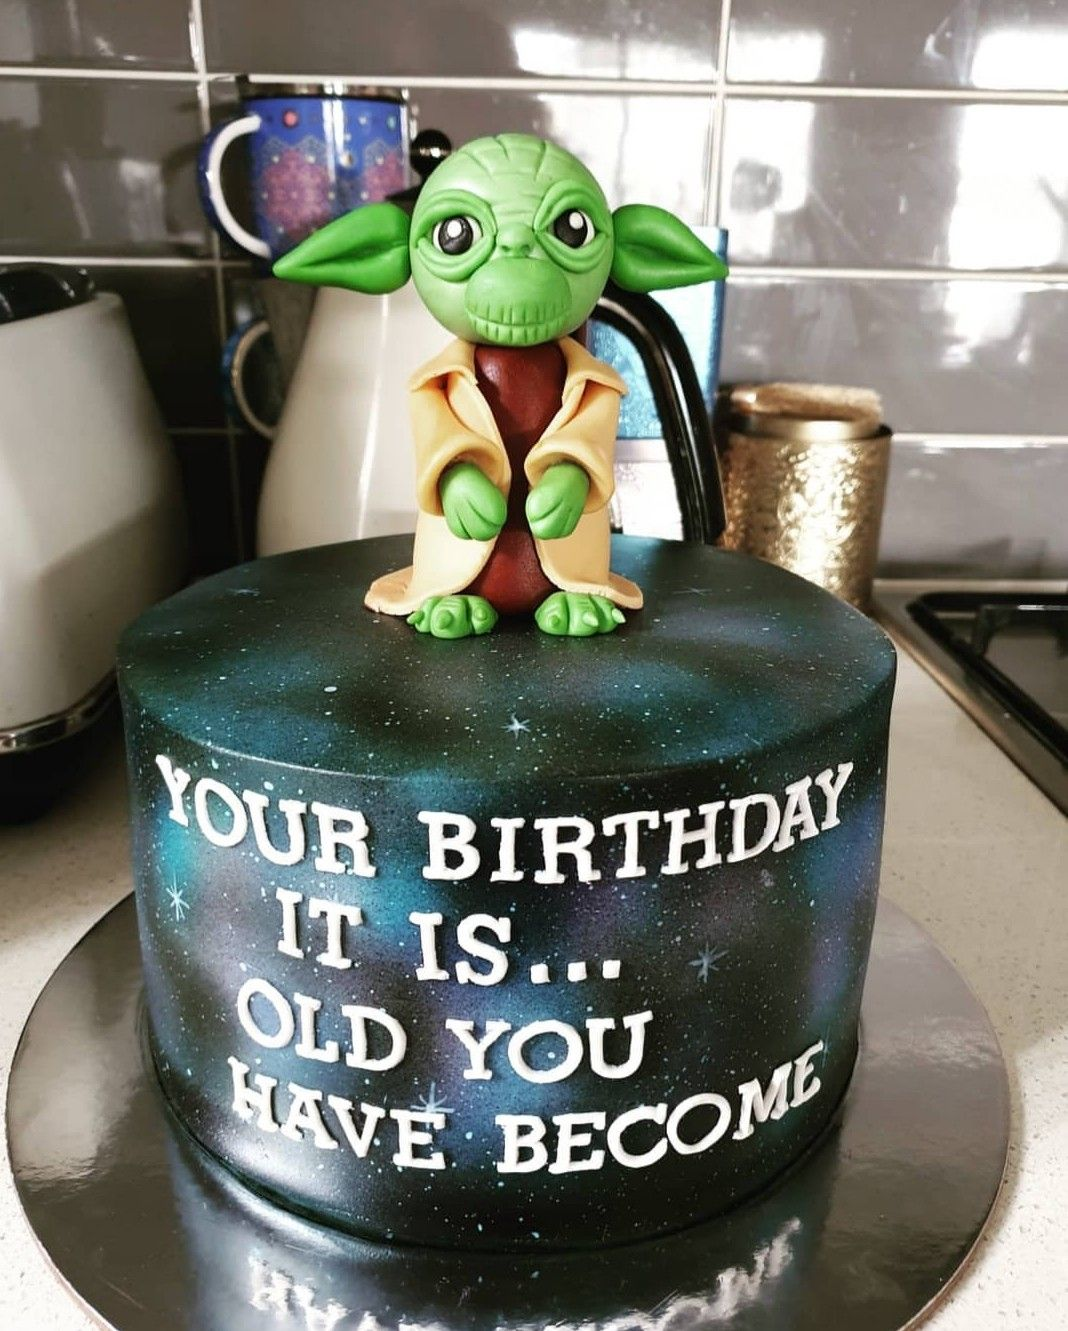 Stupendous Yoda Cake Star Wars Cake With Images Star Wars Birthday Cake Birthday Cards Printable Giouspongecafe Filternl